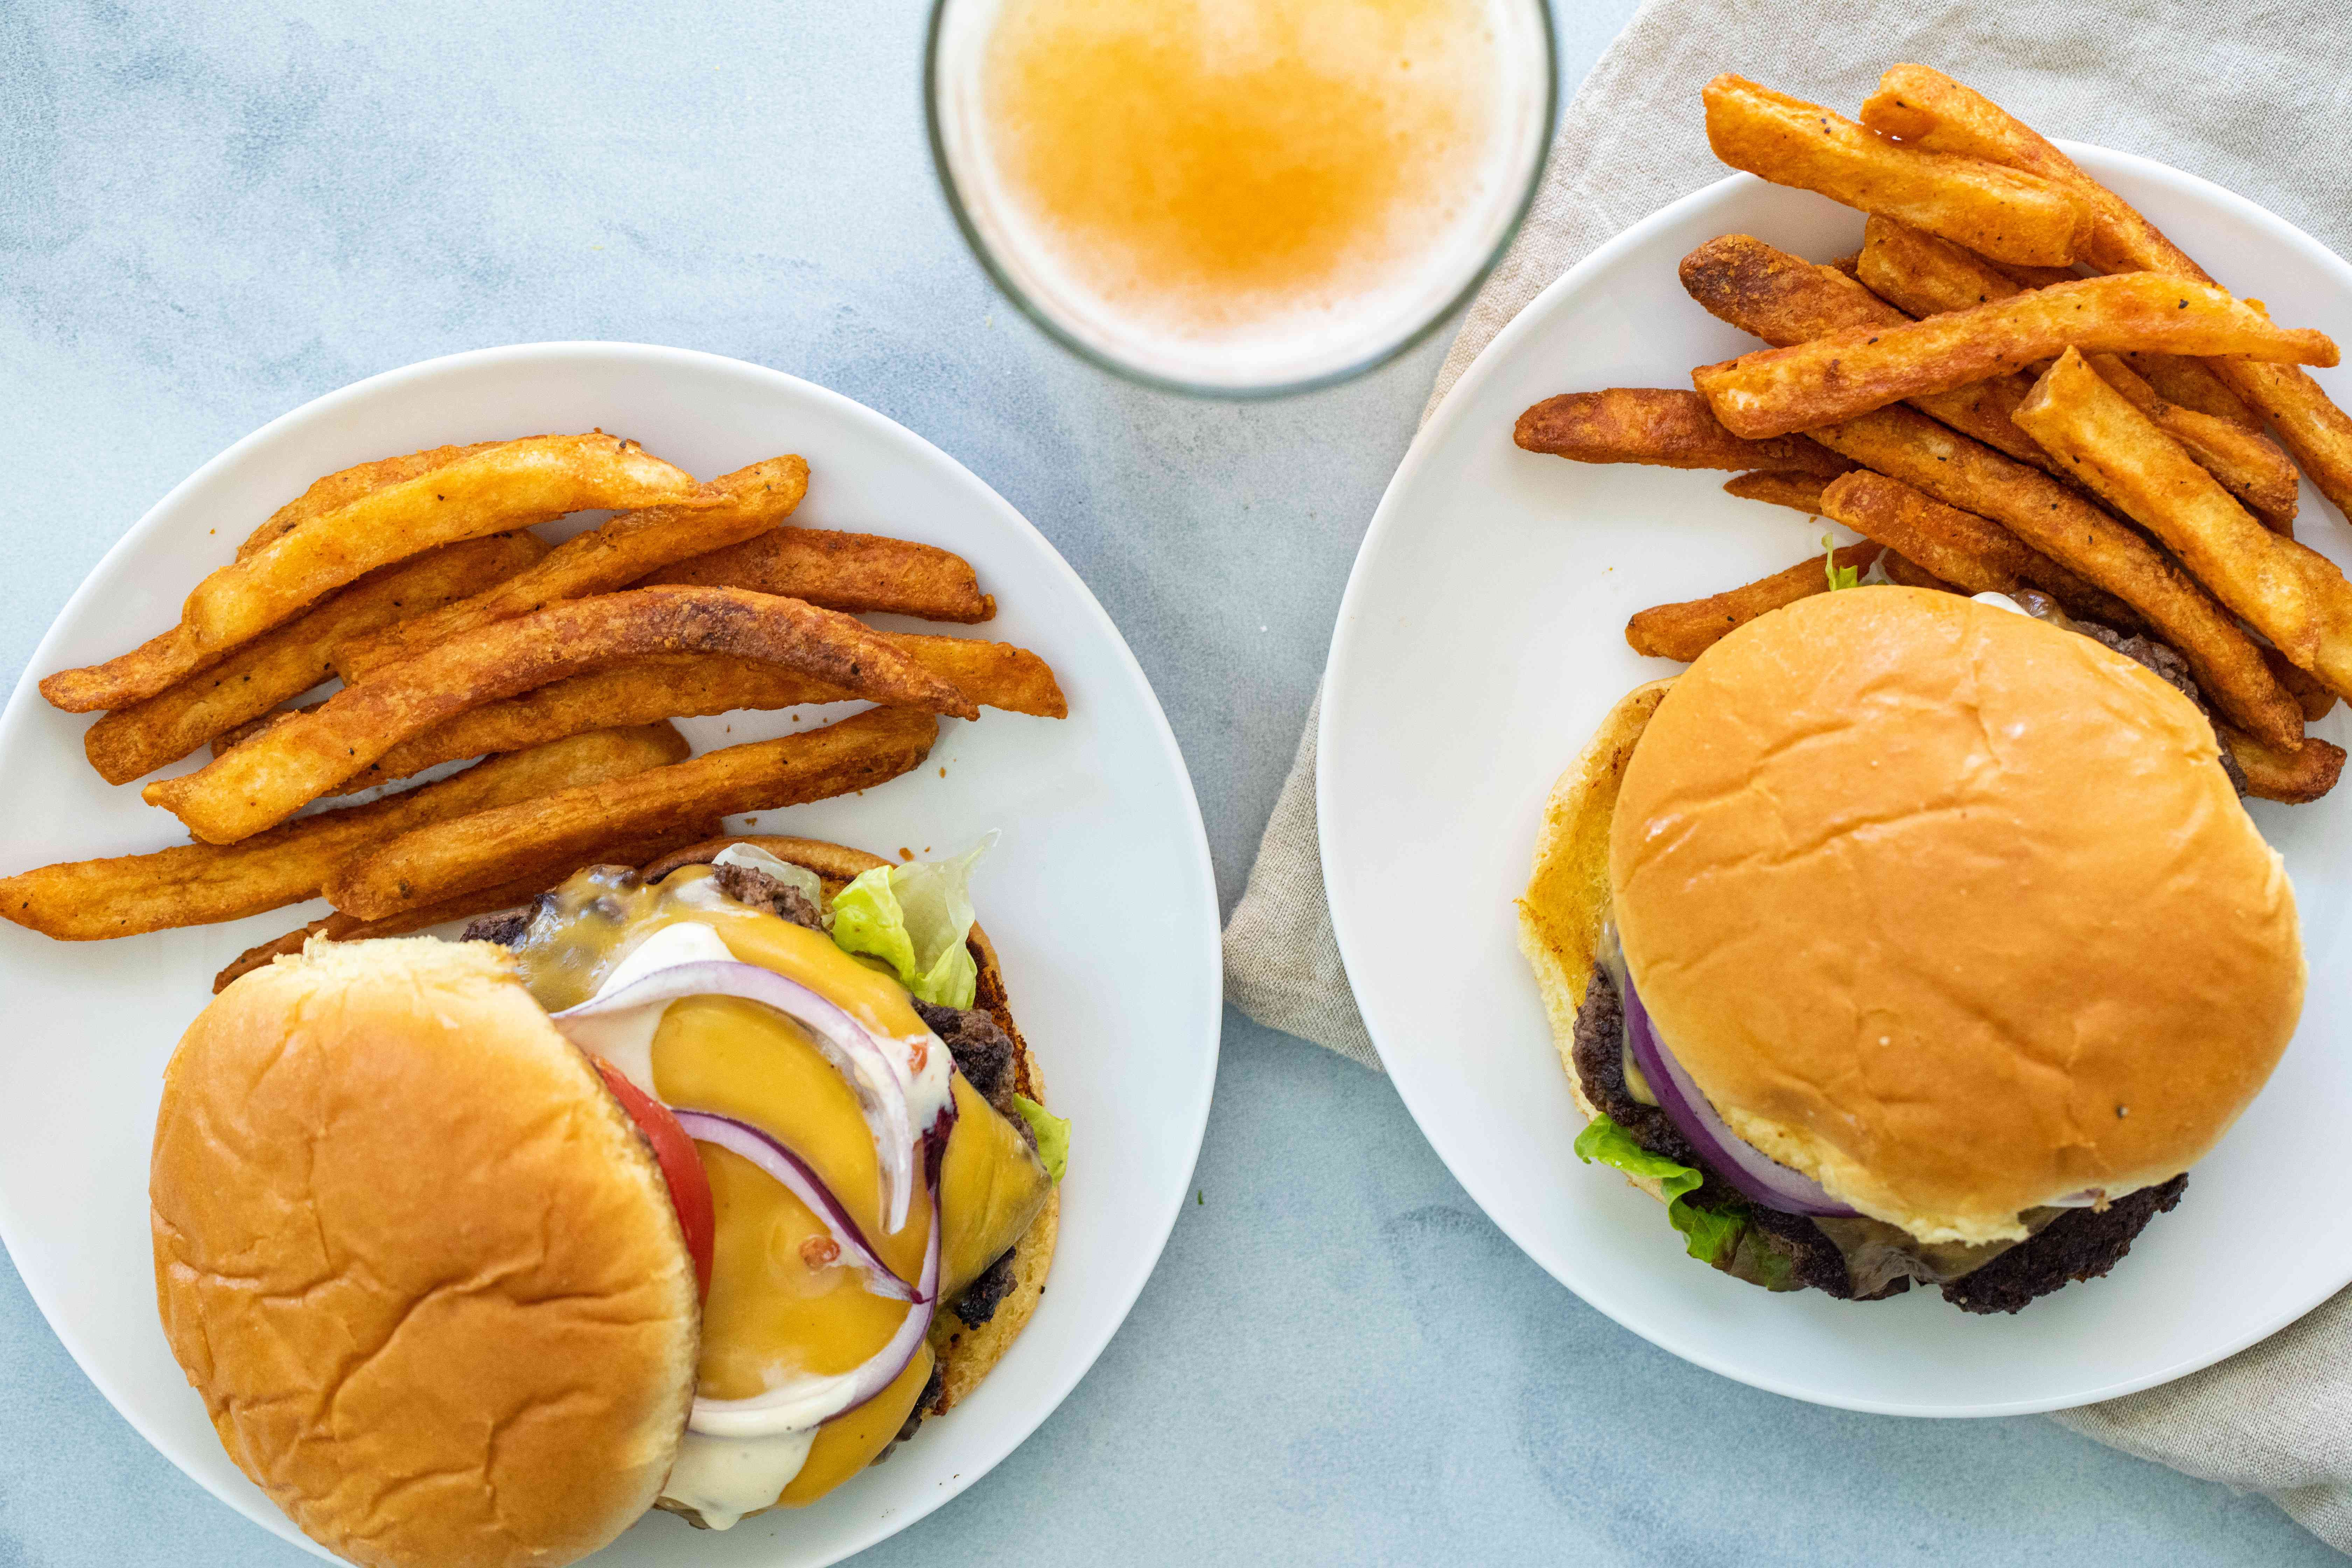 Overhead view of two plates with homemade smashburgers and fries.